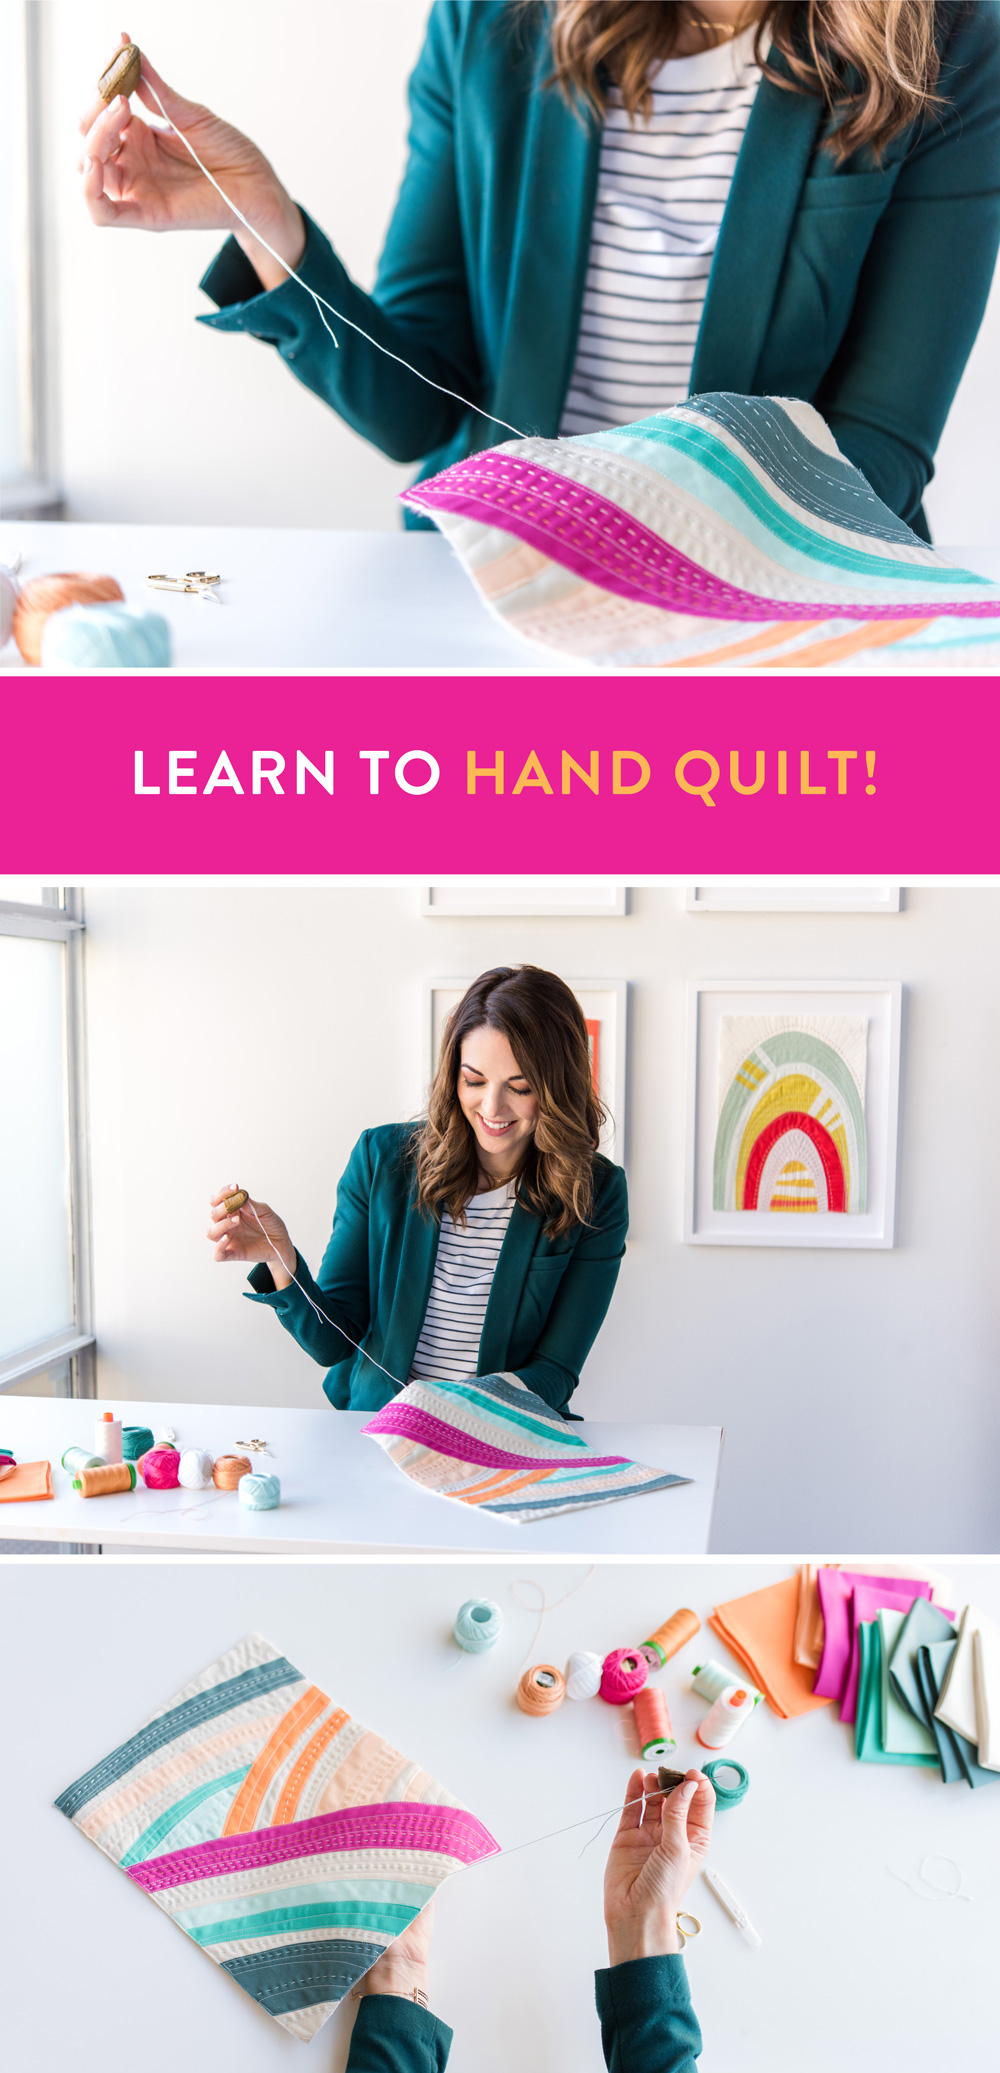 Sew Mojo Mini Quilts Suzy Quilts Fabric Play | Suzy Quilts https://suzyquilts.com/fabric-play-sewing-mojo-minis